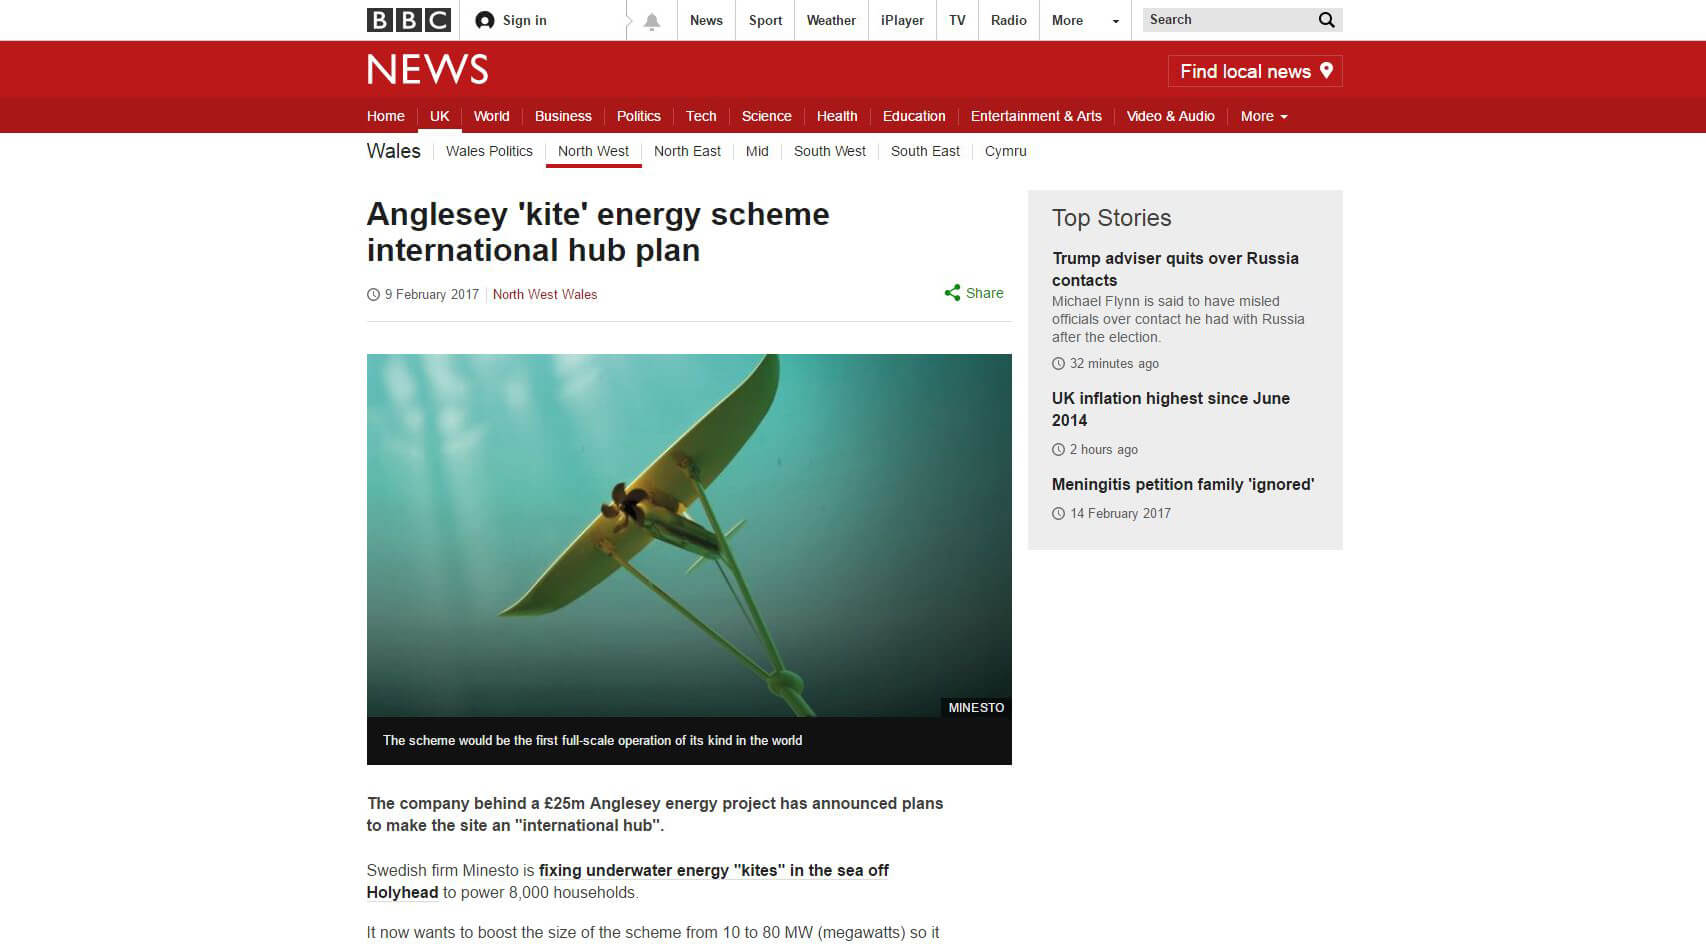 Sanders Studios_Minesto Subsea Illustration_BBC News Report